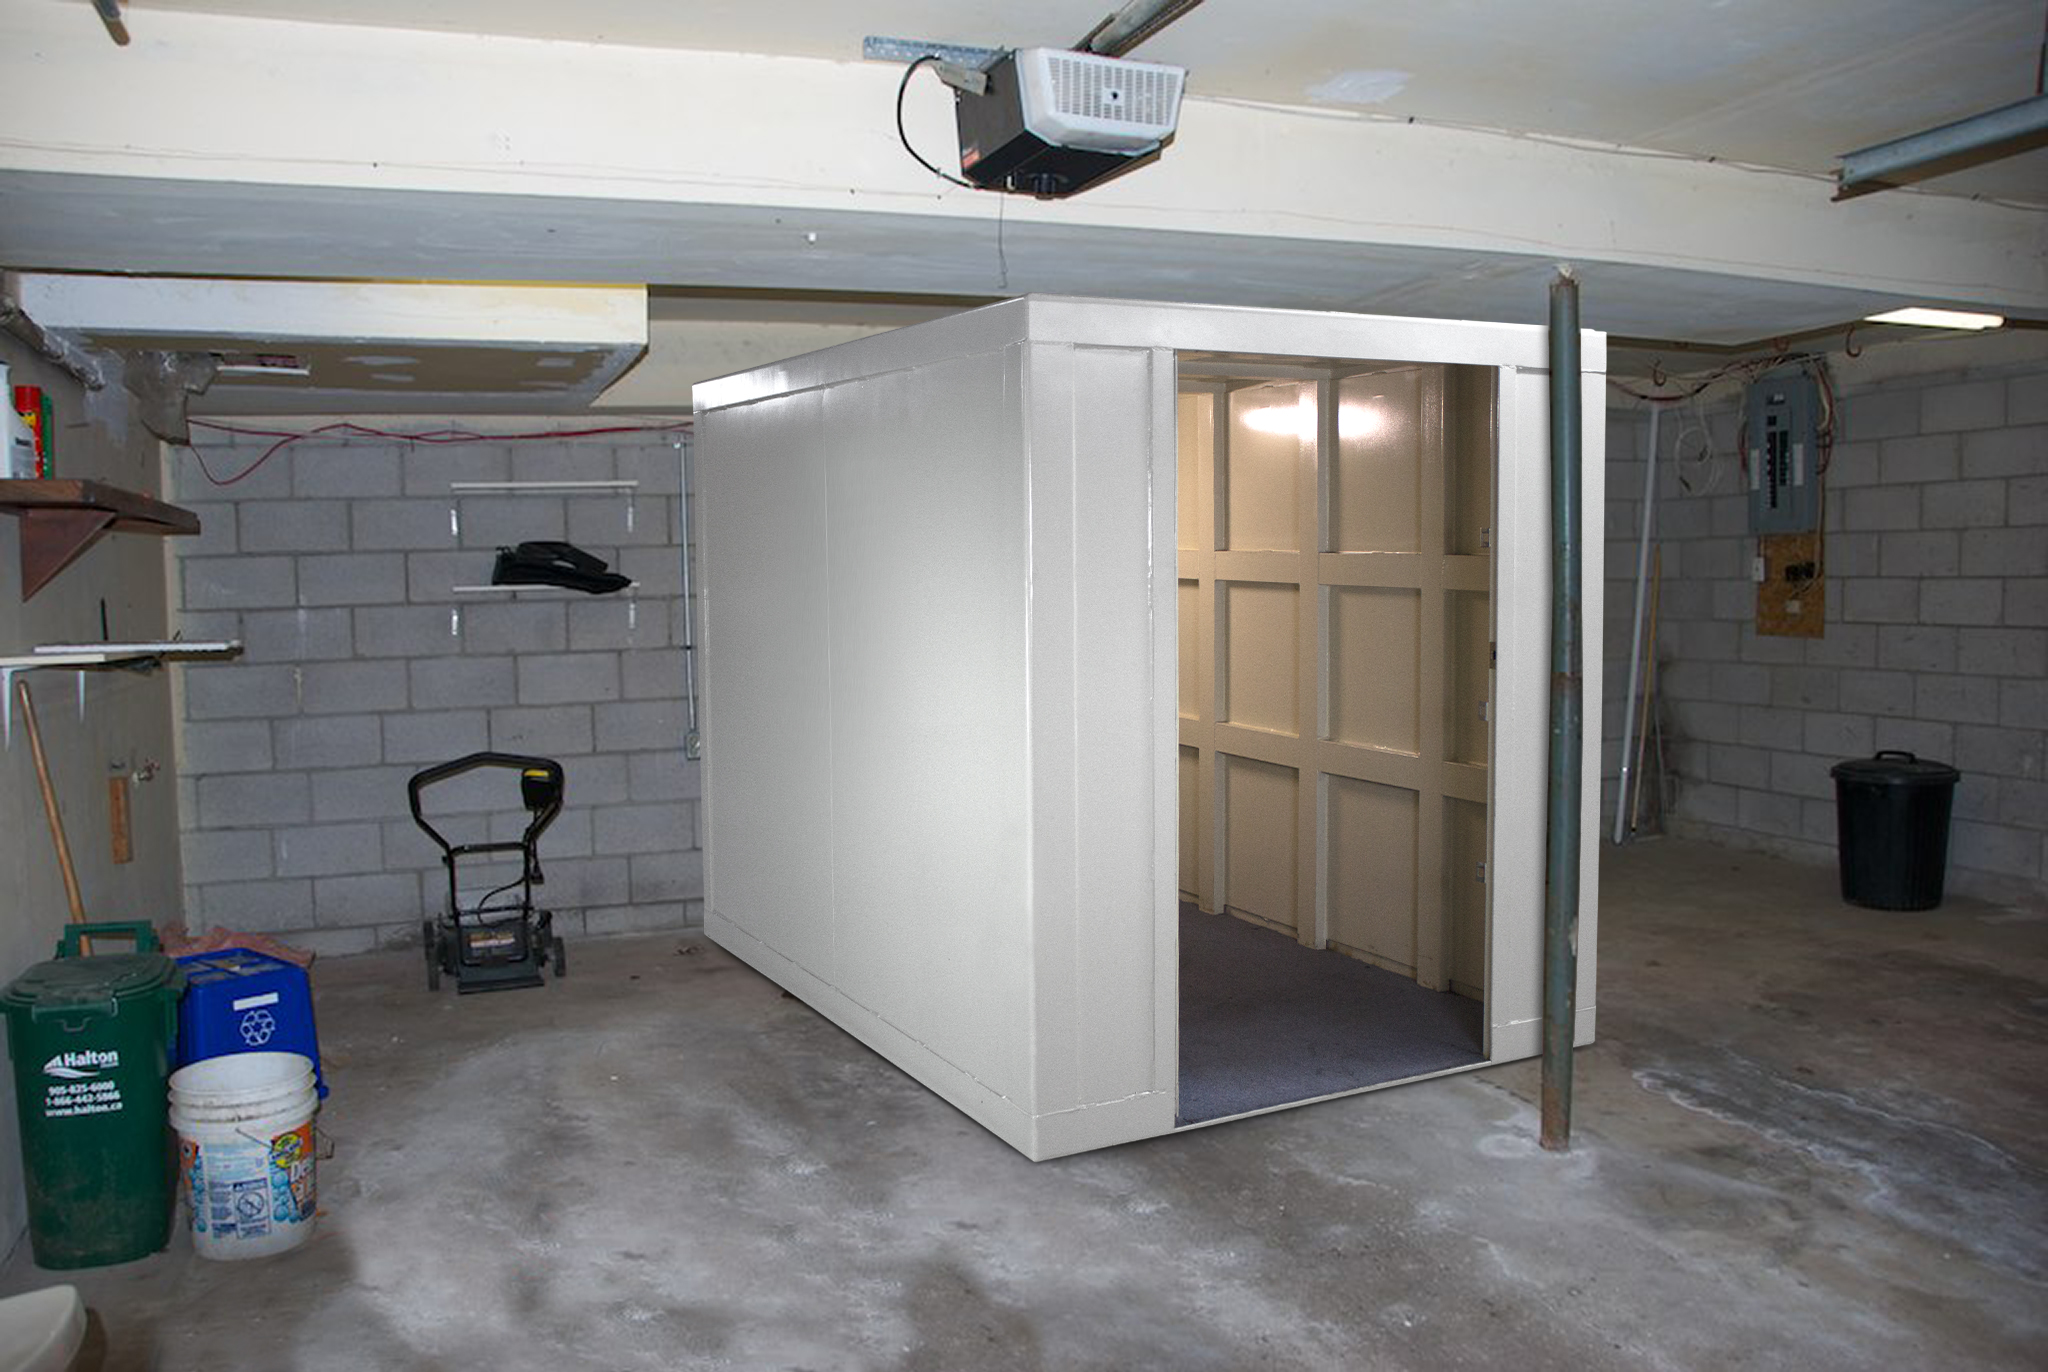 Safe room in a basement with lawn